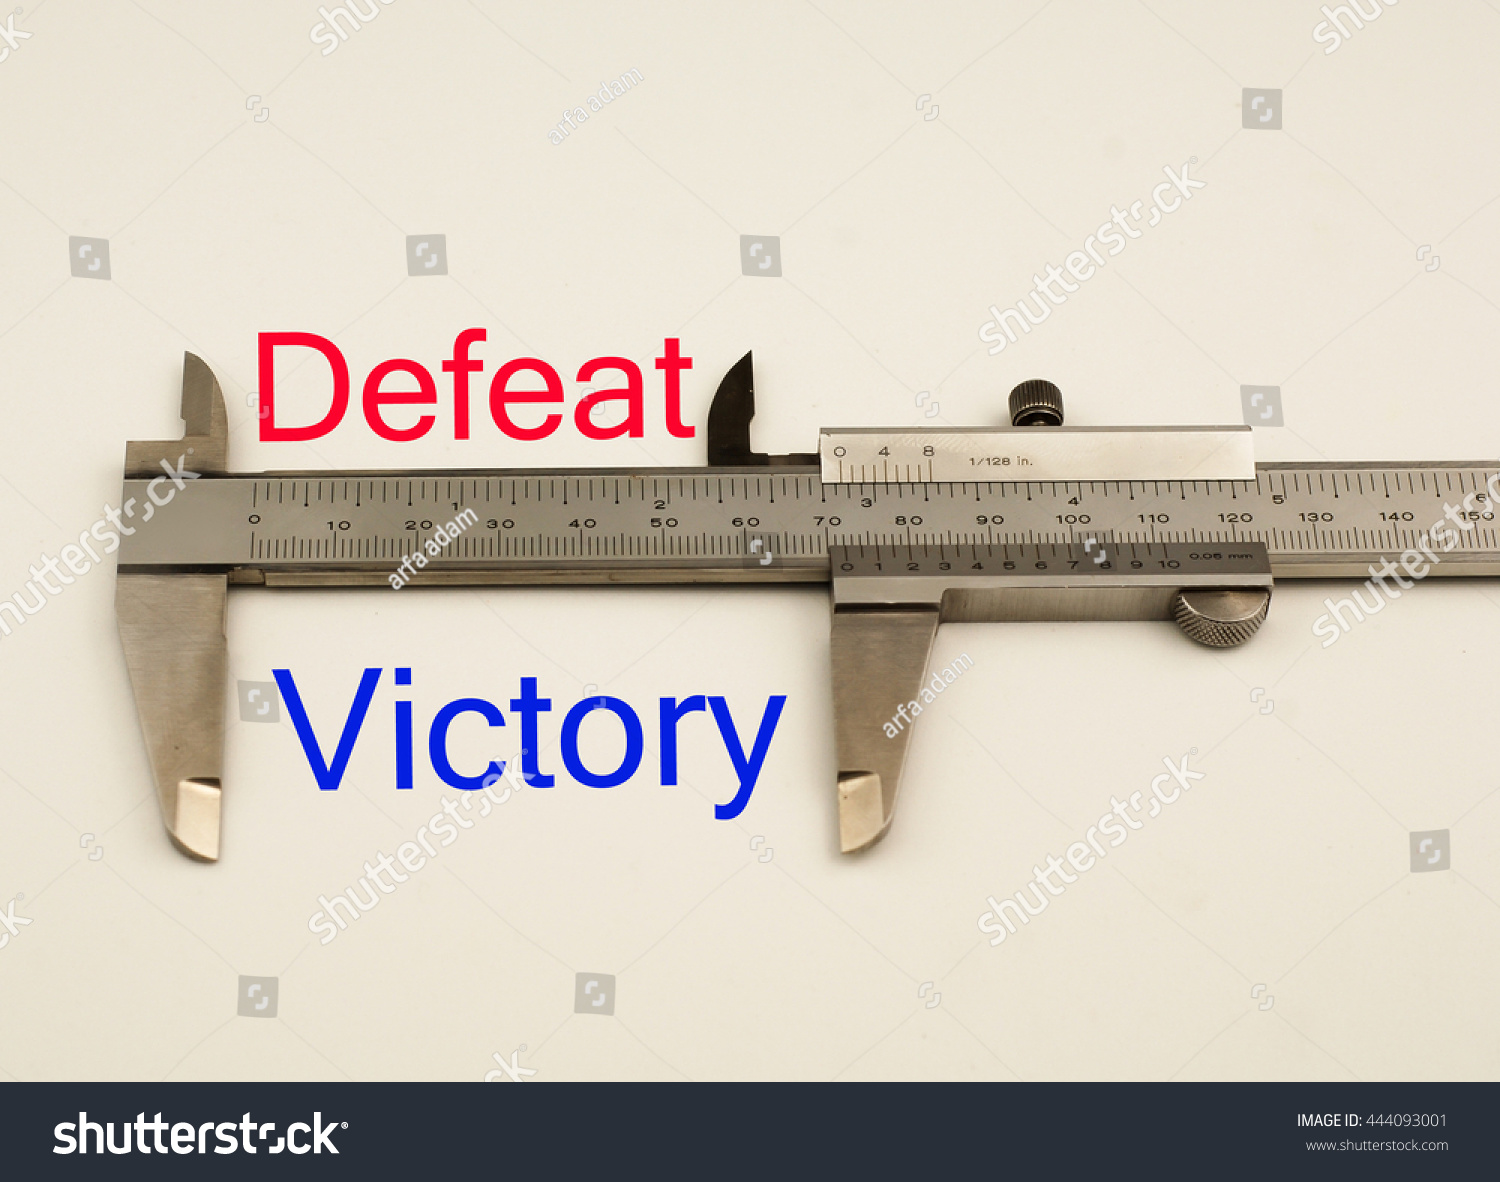 Worksheet Antonym For Simple vernier caliper with word victory vs defeat antonym concept stock save to a lightbox